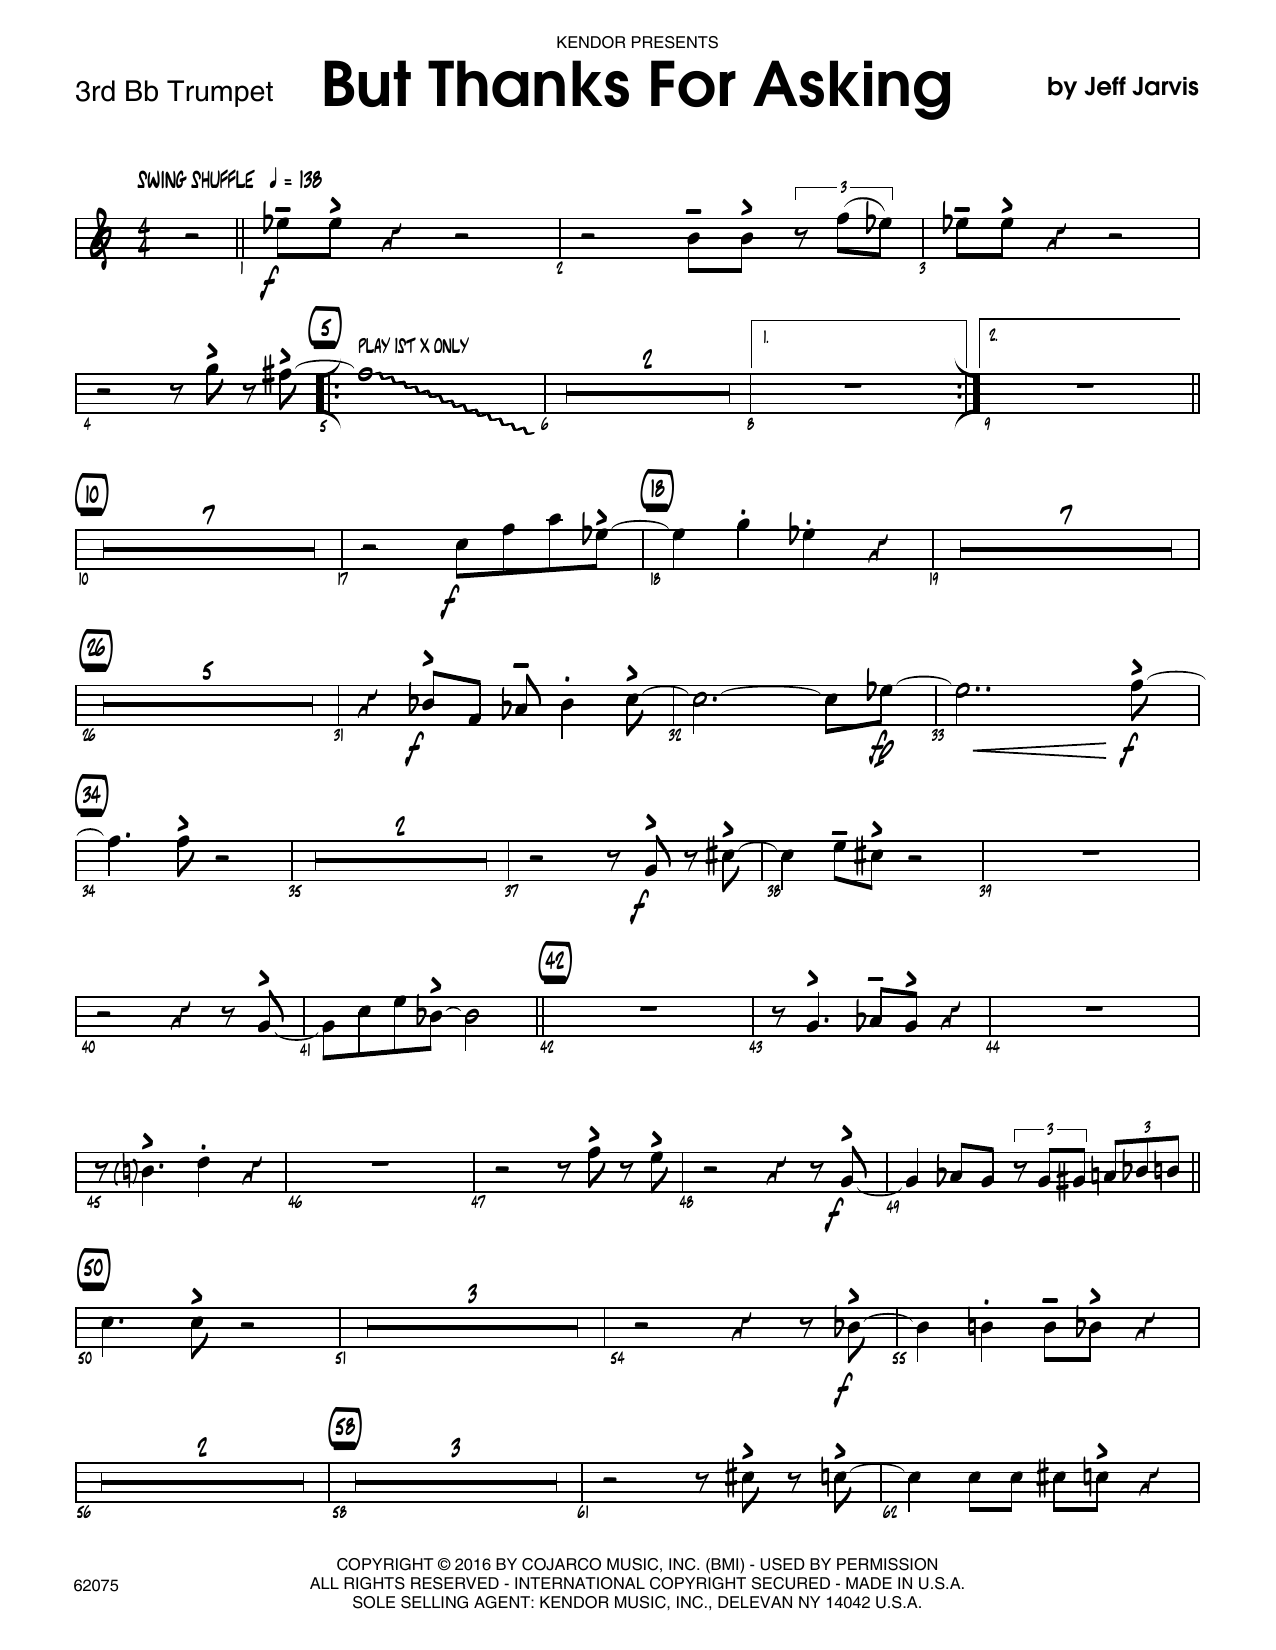 But Thanks For Asking - 3rd Bb Trumpet Sheet Music